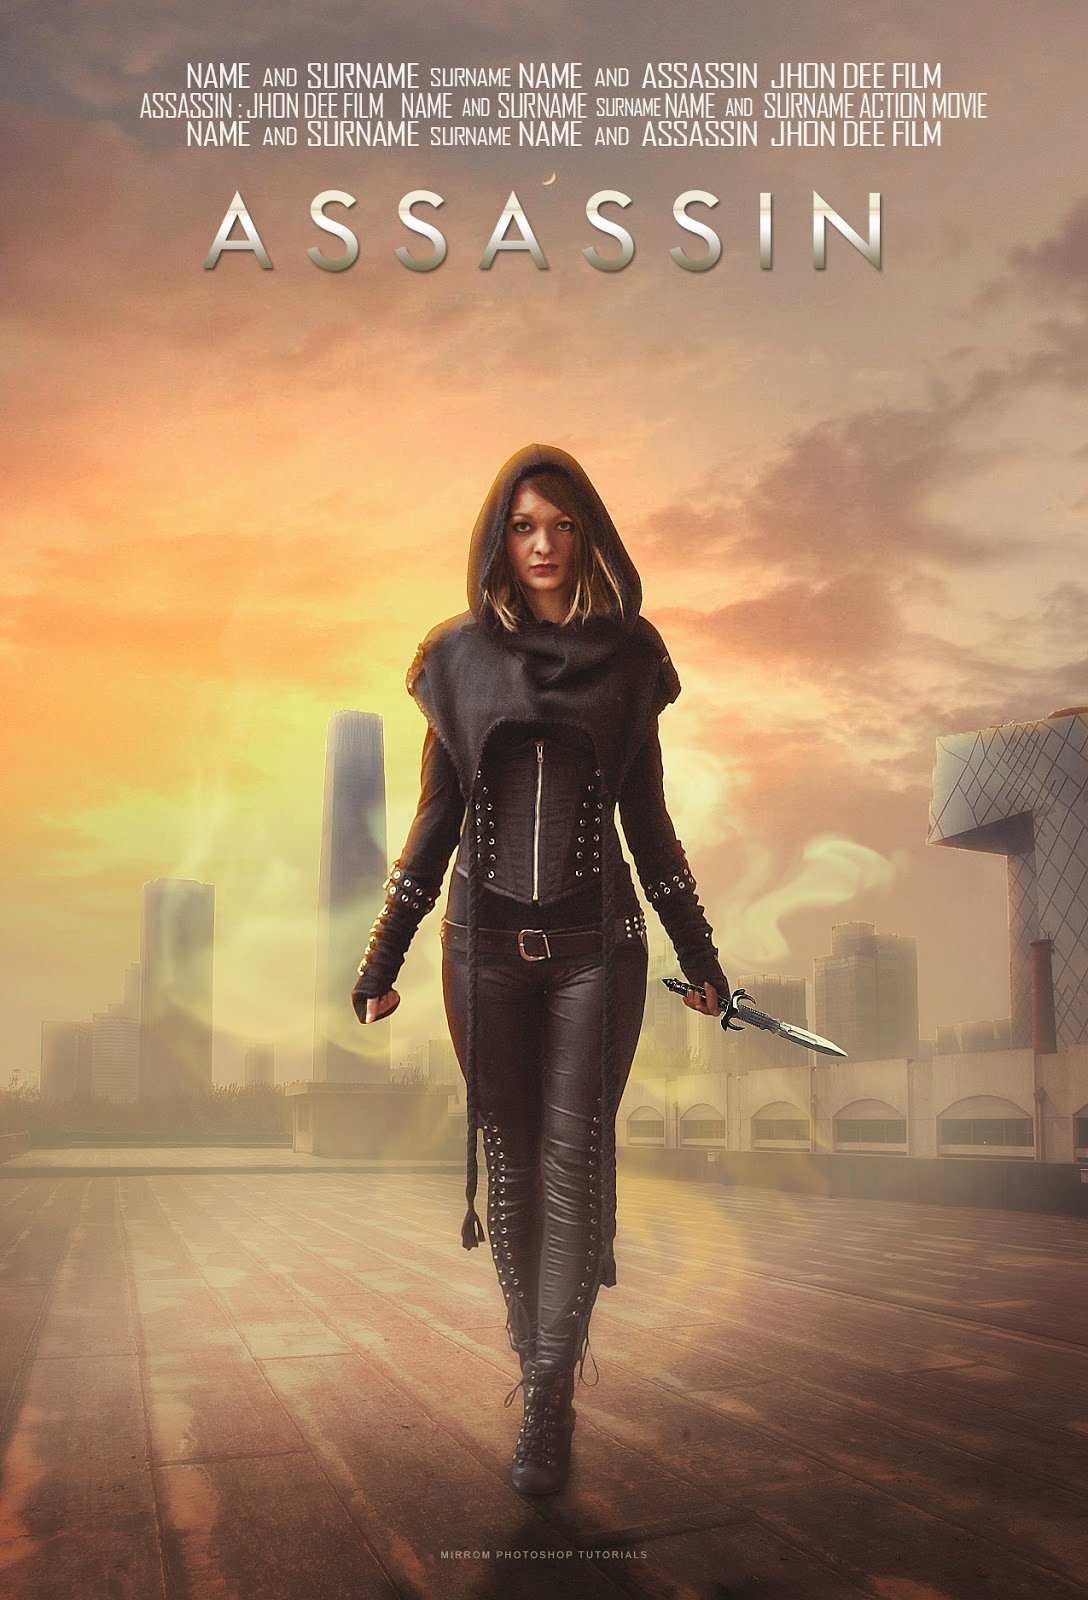 Create A assassin Movie Poster Manipulation In Shop